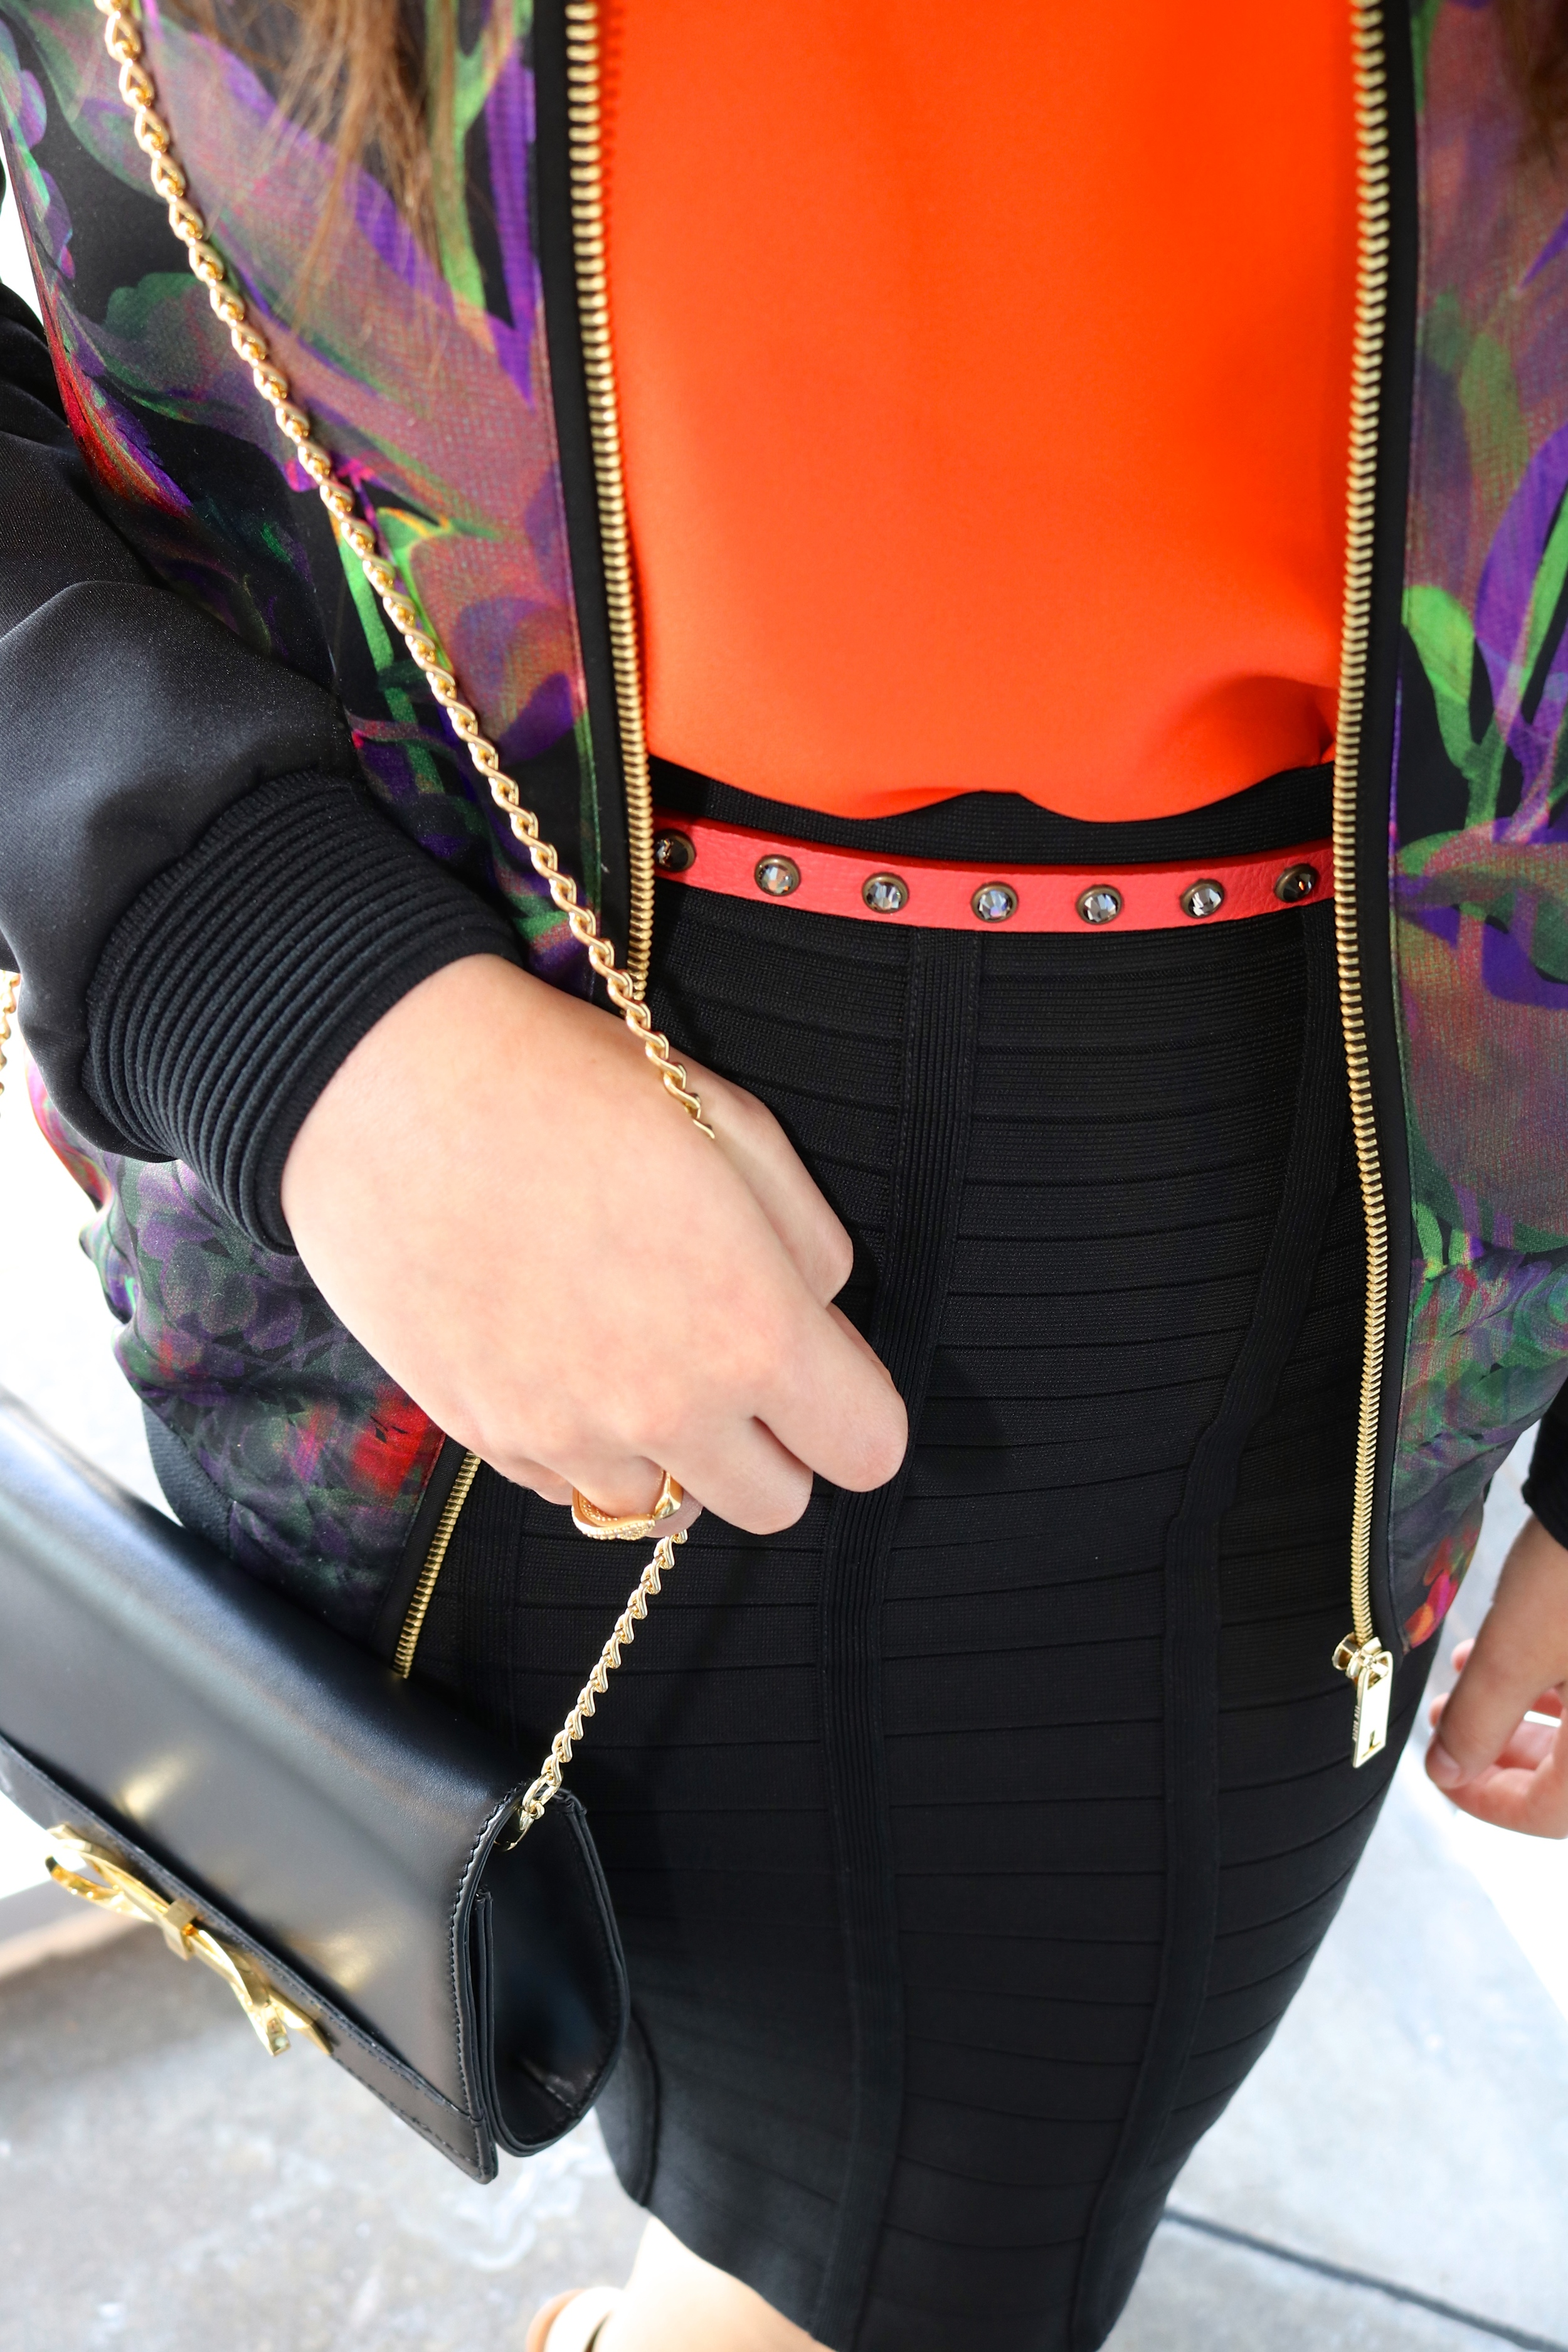 Ted Baker PHOEBEE Clutch and Leatherock Belt.  Mention this post and save 30% on these two pieces.